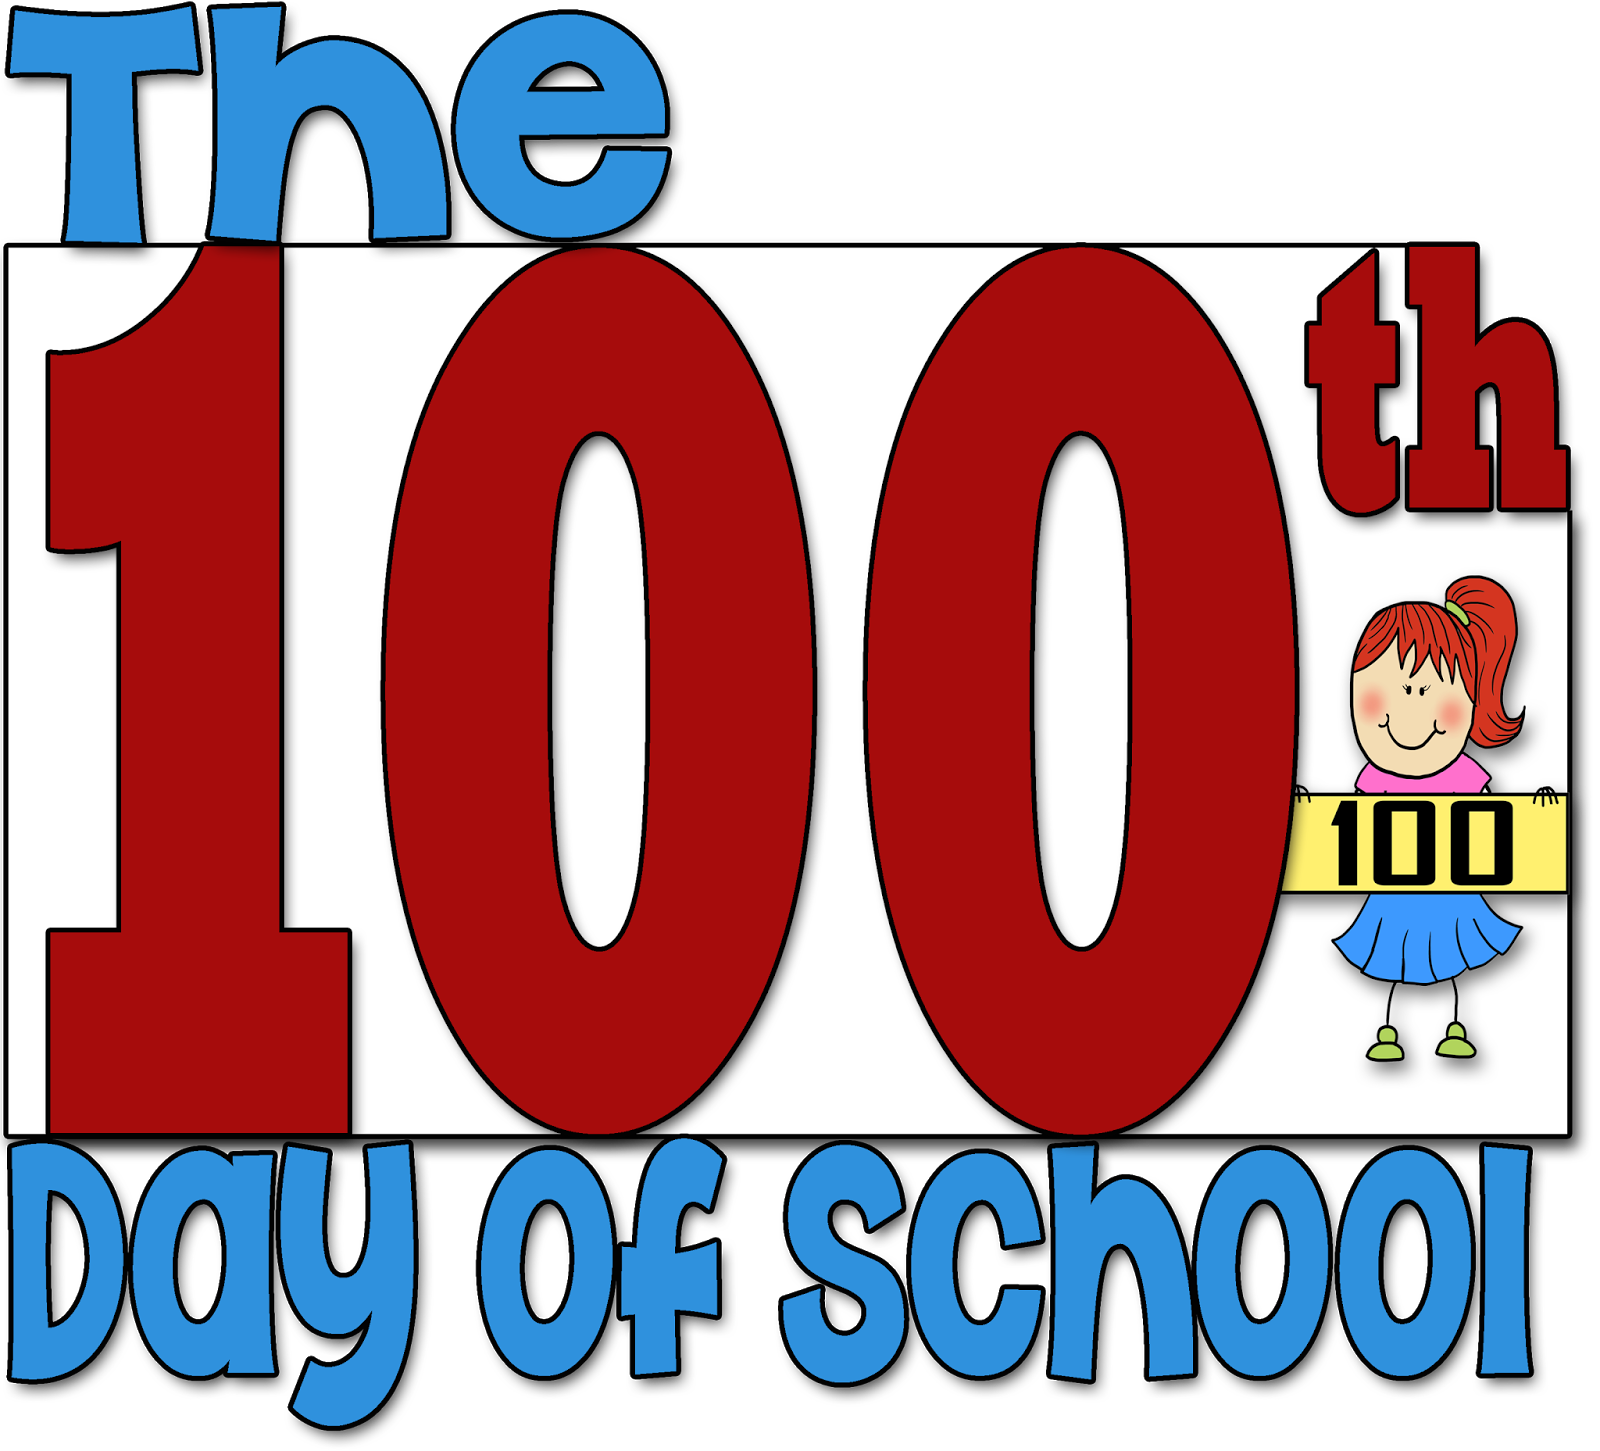 School news clipart svg freeuse Smithville Elementary School: Latest News - SES Celebrates the 100th ... svg freeuse